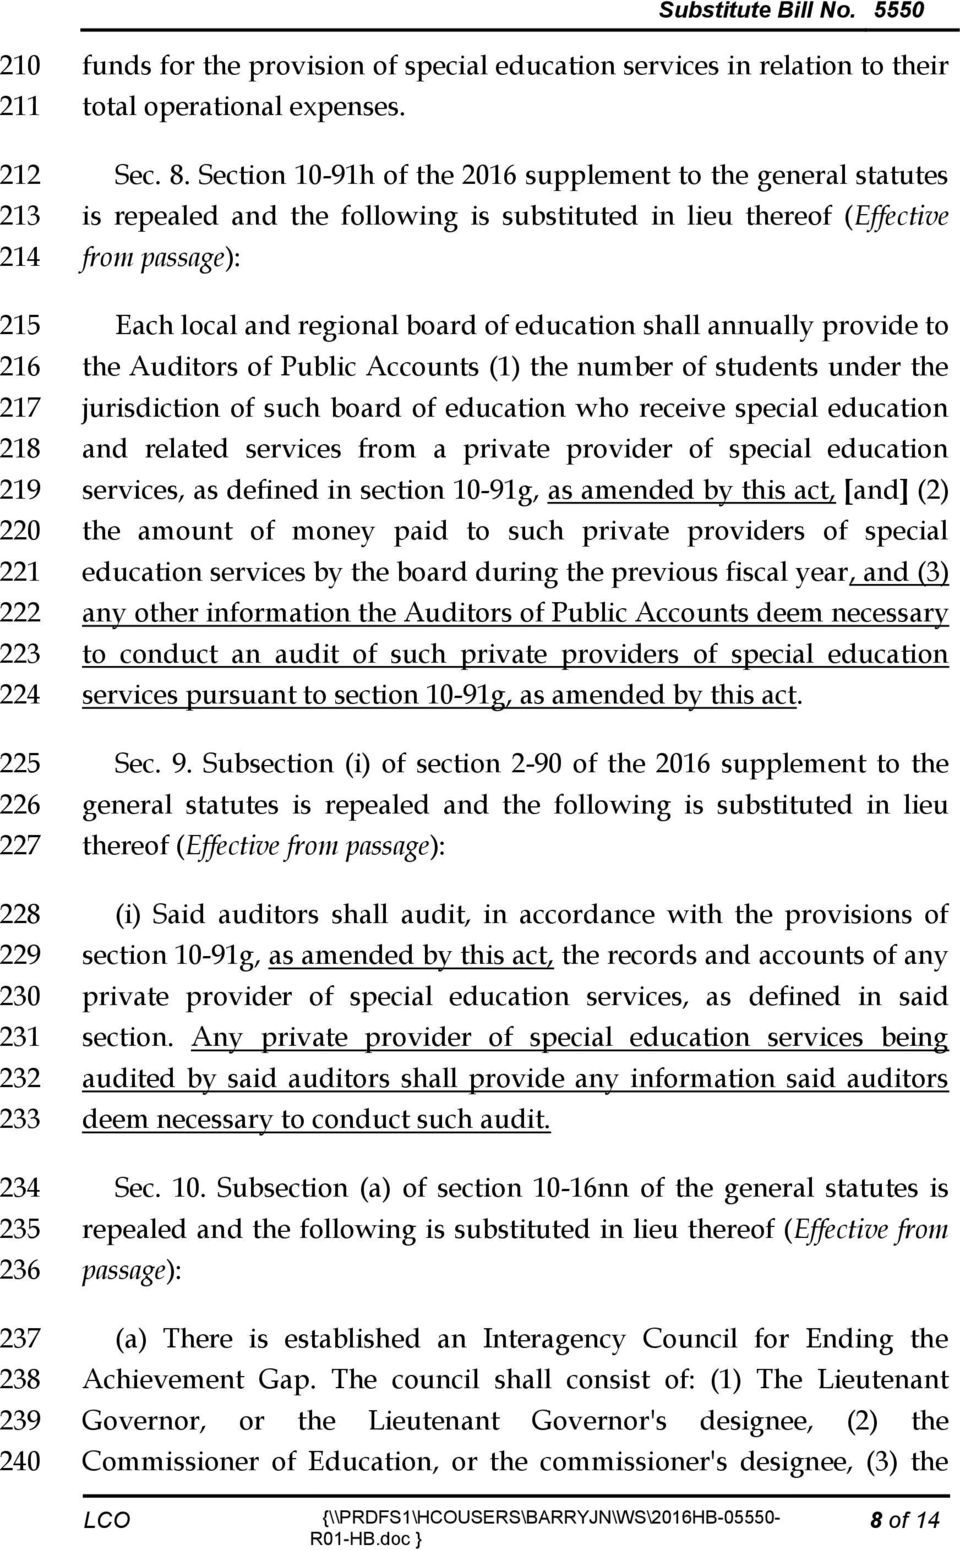 Section 10-91h of the 2016 supplement to the general statutes is repealed and the following is substituted in lieu thereof (Effective from passage): Each local and regional board of education shall